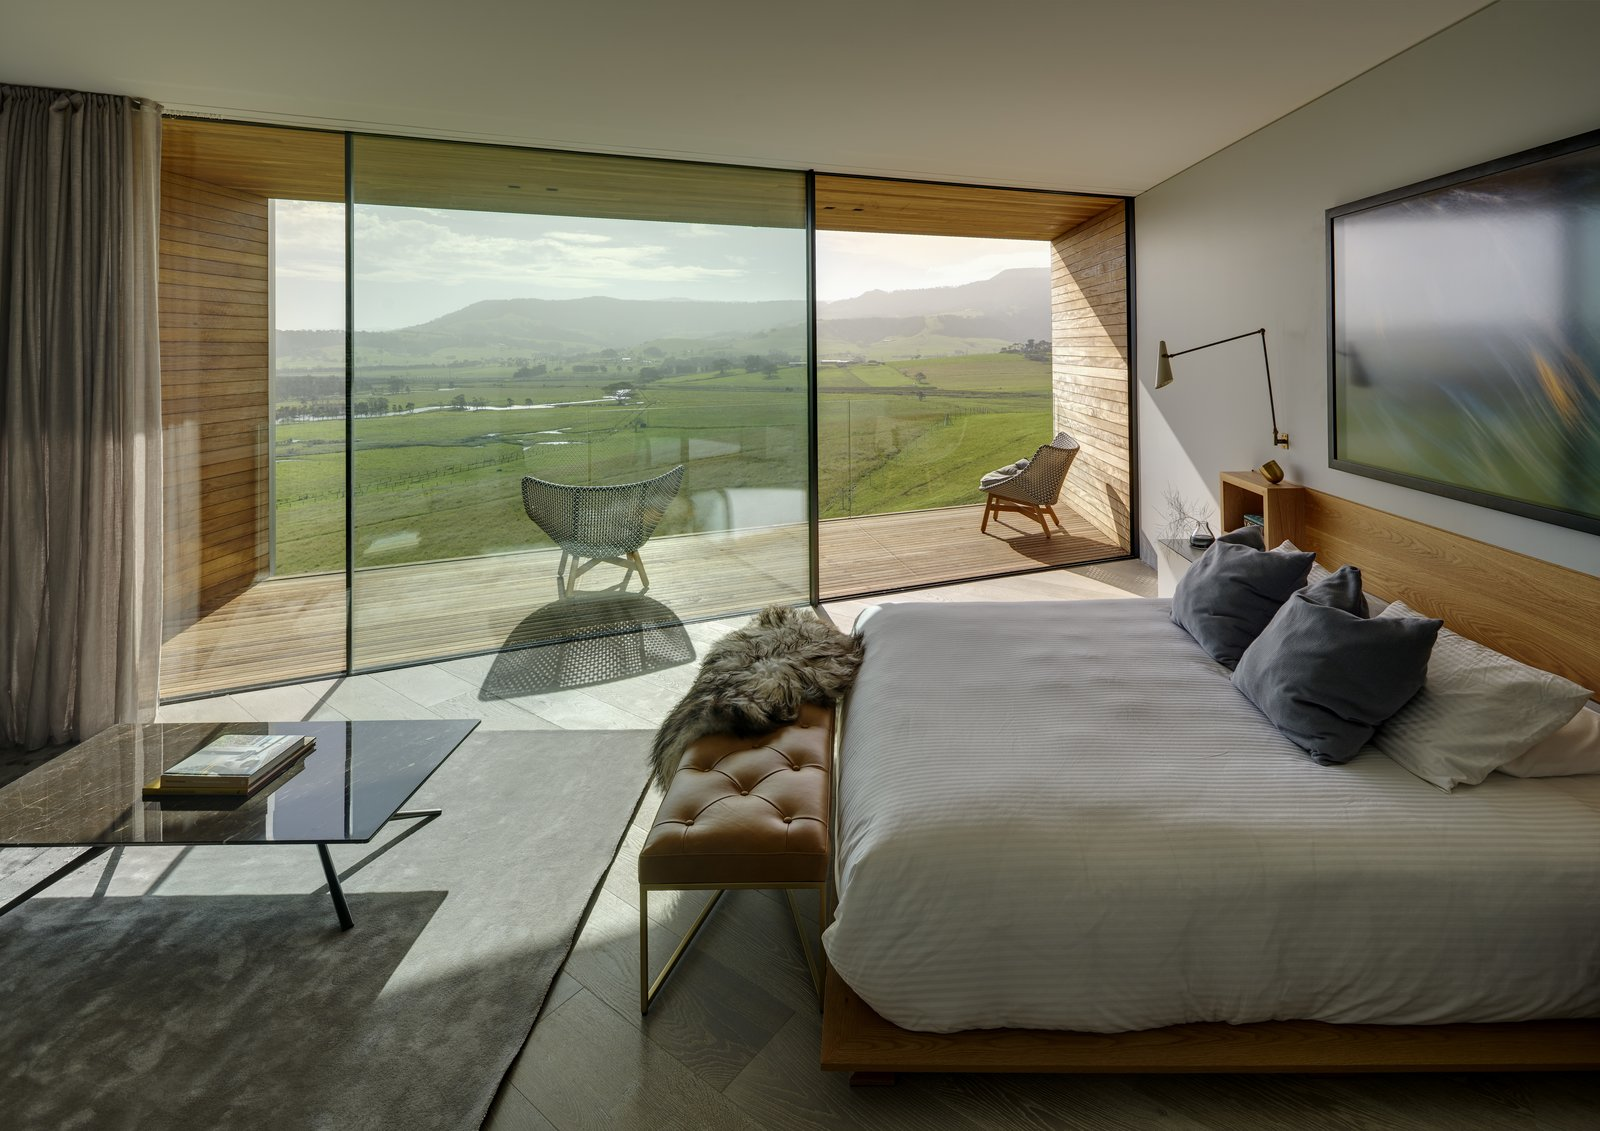 Bedroom, Night Stands, Bed, Wall, Light Hardwood, Rug, and Bench The bedroom view.  Best Bedroom Wall Bed Rug Light Hardwood Photos from An Australian Abode Fuses Structure With Scenery